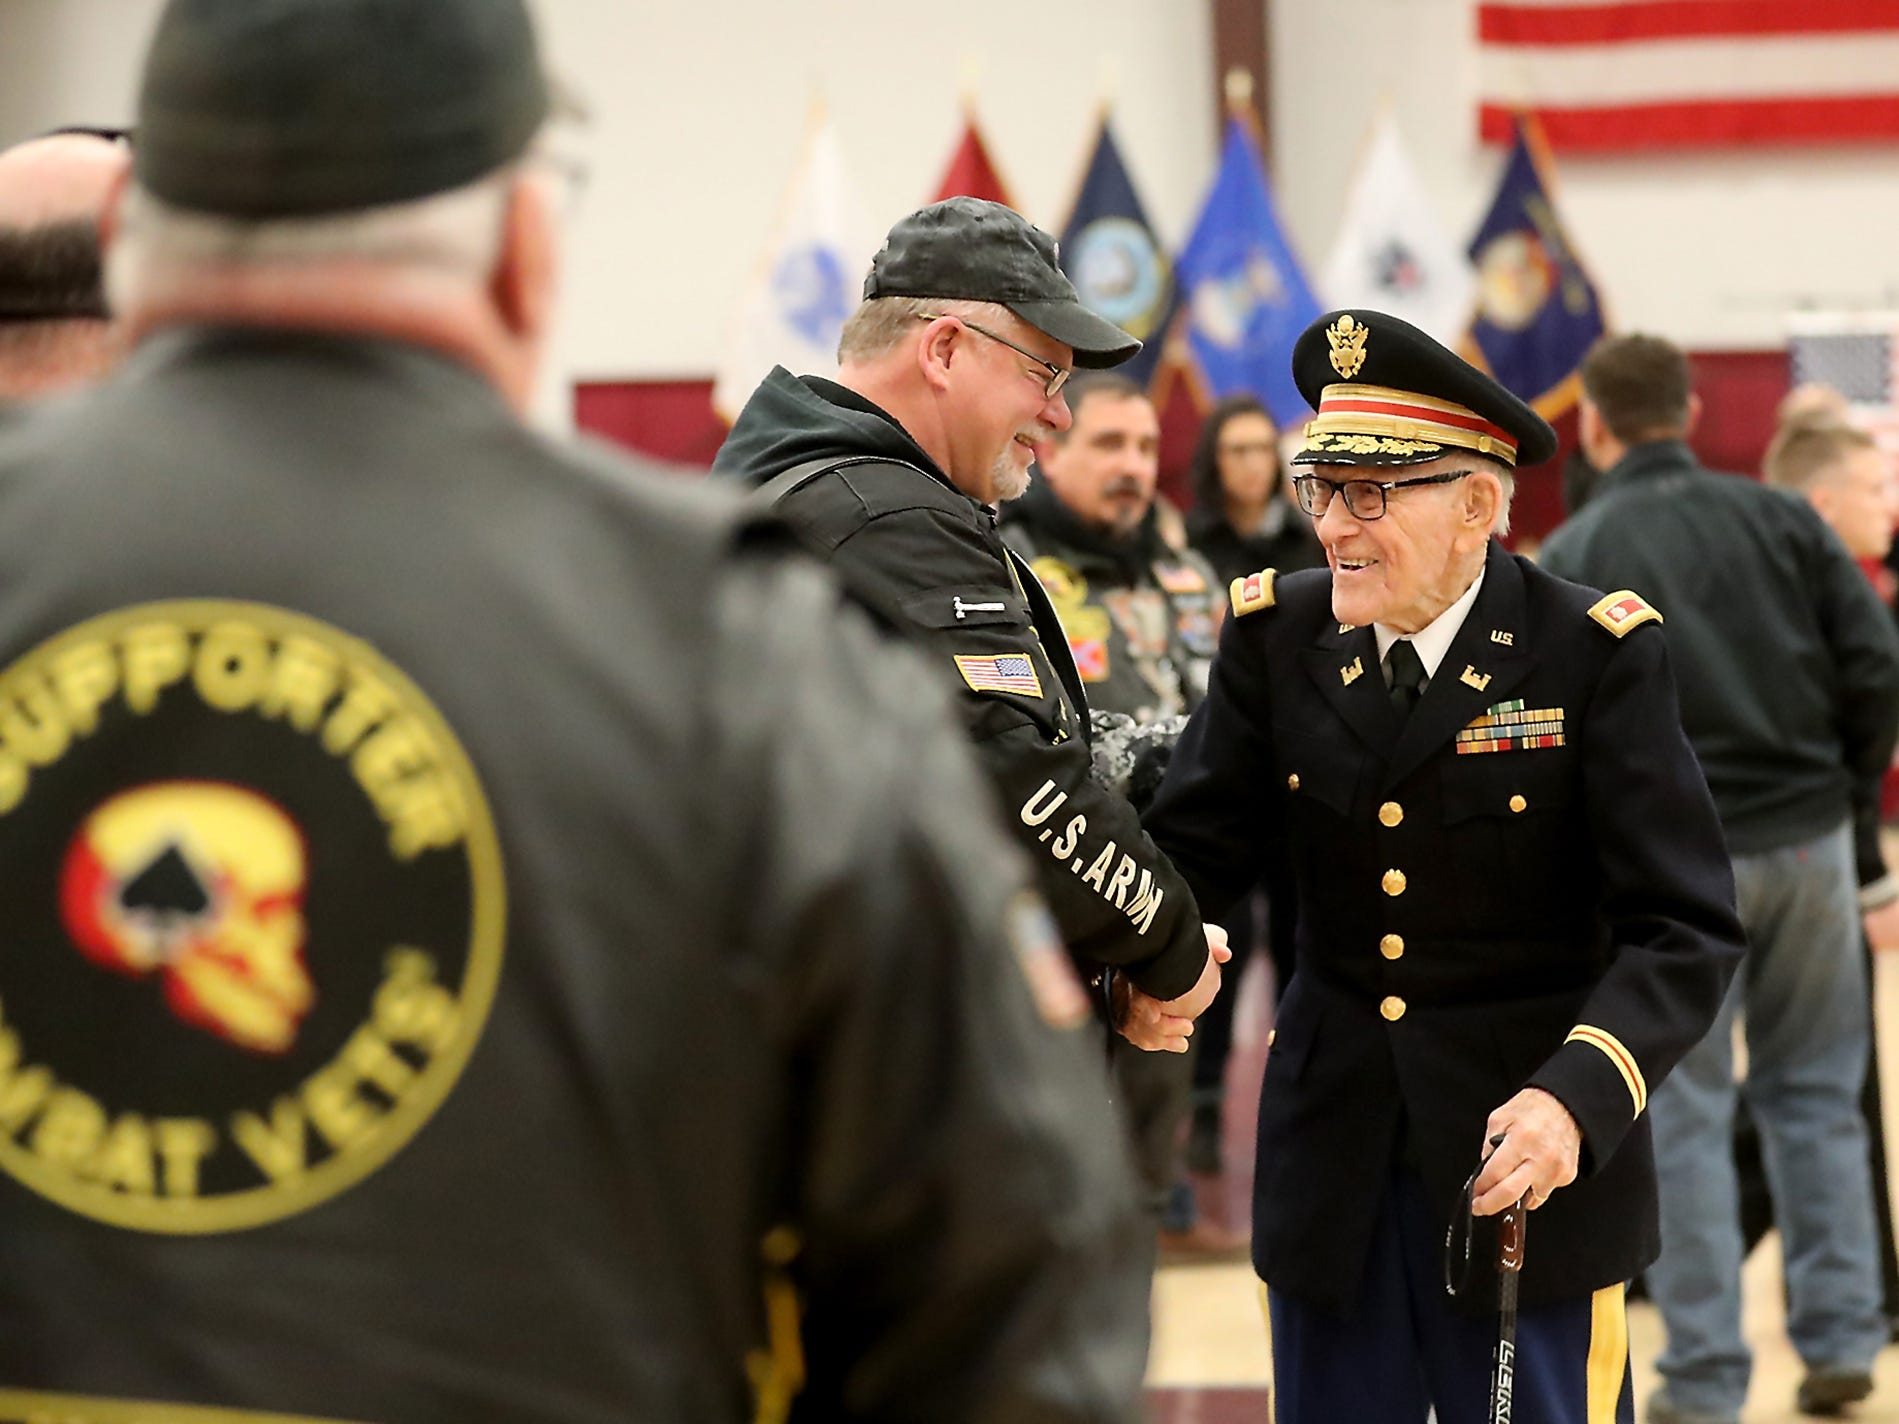 World War II Veteran Vernon Frykholm (right), shakes hands with attendees after the conclusion of the Honoring All Who Served Veterans Day ceremony at the Kitsap Sun Pavilion on Monday, November 12, 2018. Fyrkholm, who is 102-years-old resides in Sequim.